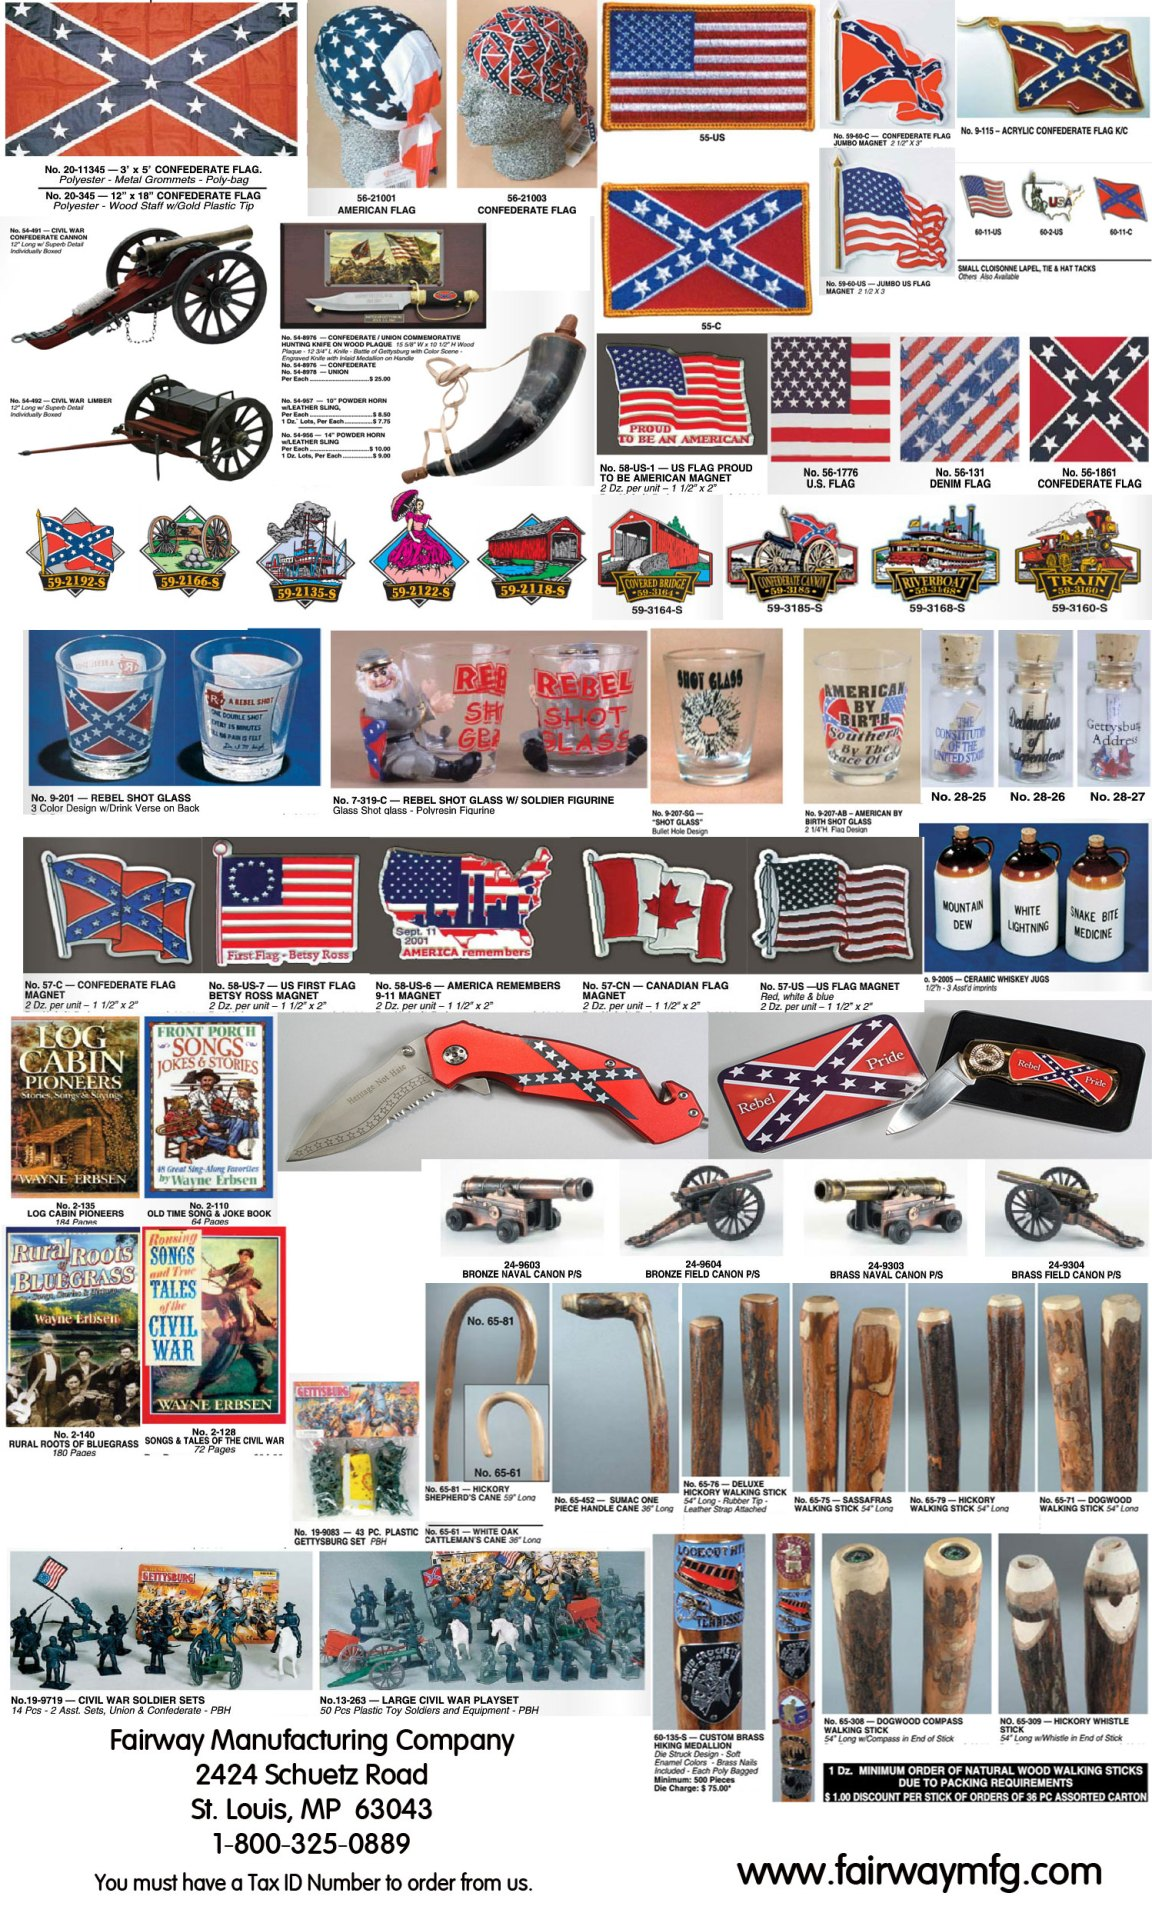 Civil War Confederate and Union Souvenirs & Gifts From Fairway Mfg Co.